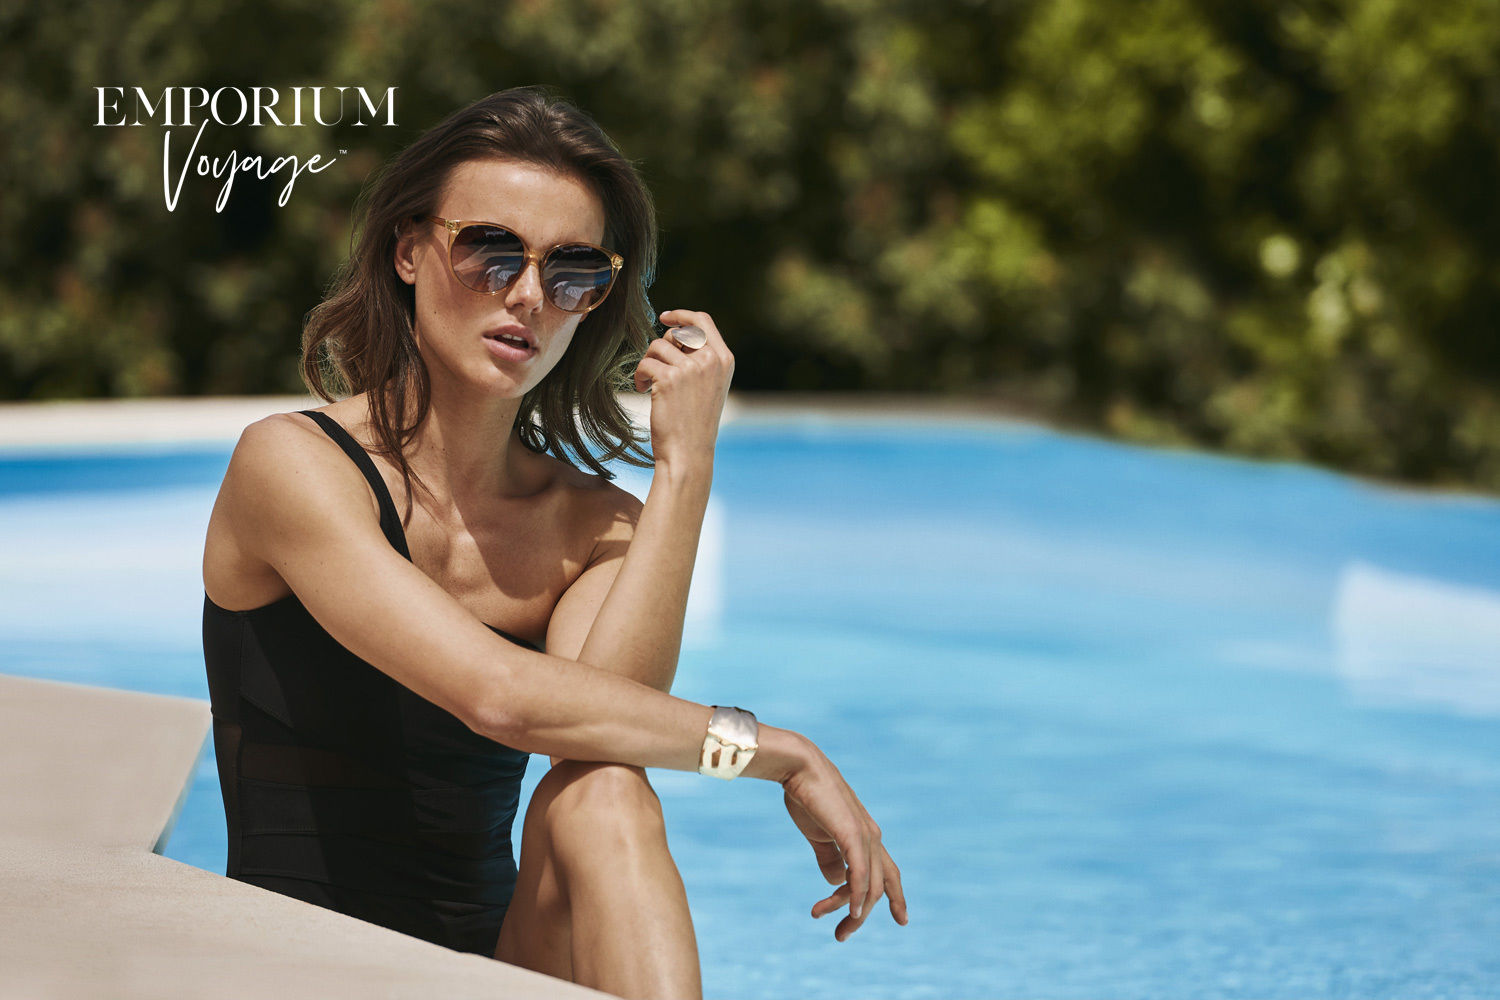 Astrid M. Obert Photography presents - EMPORIUM-VOYAGE Campaign